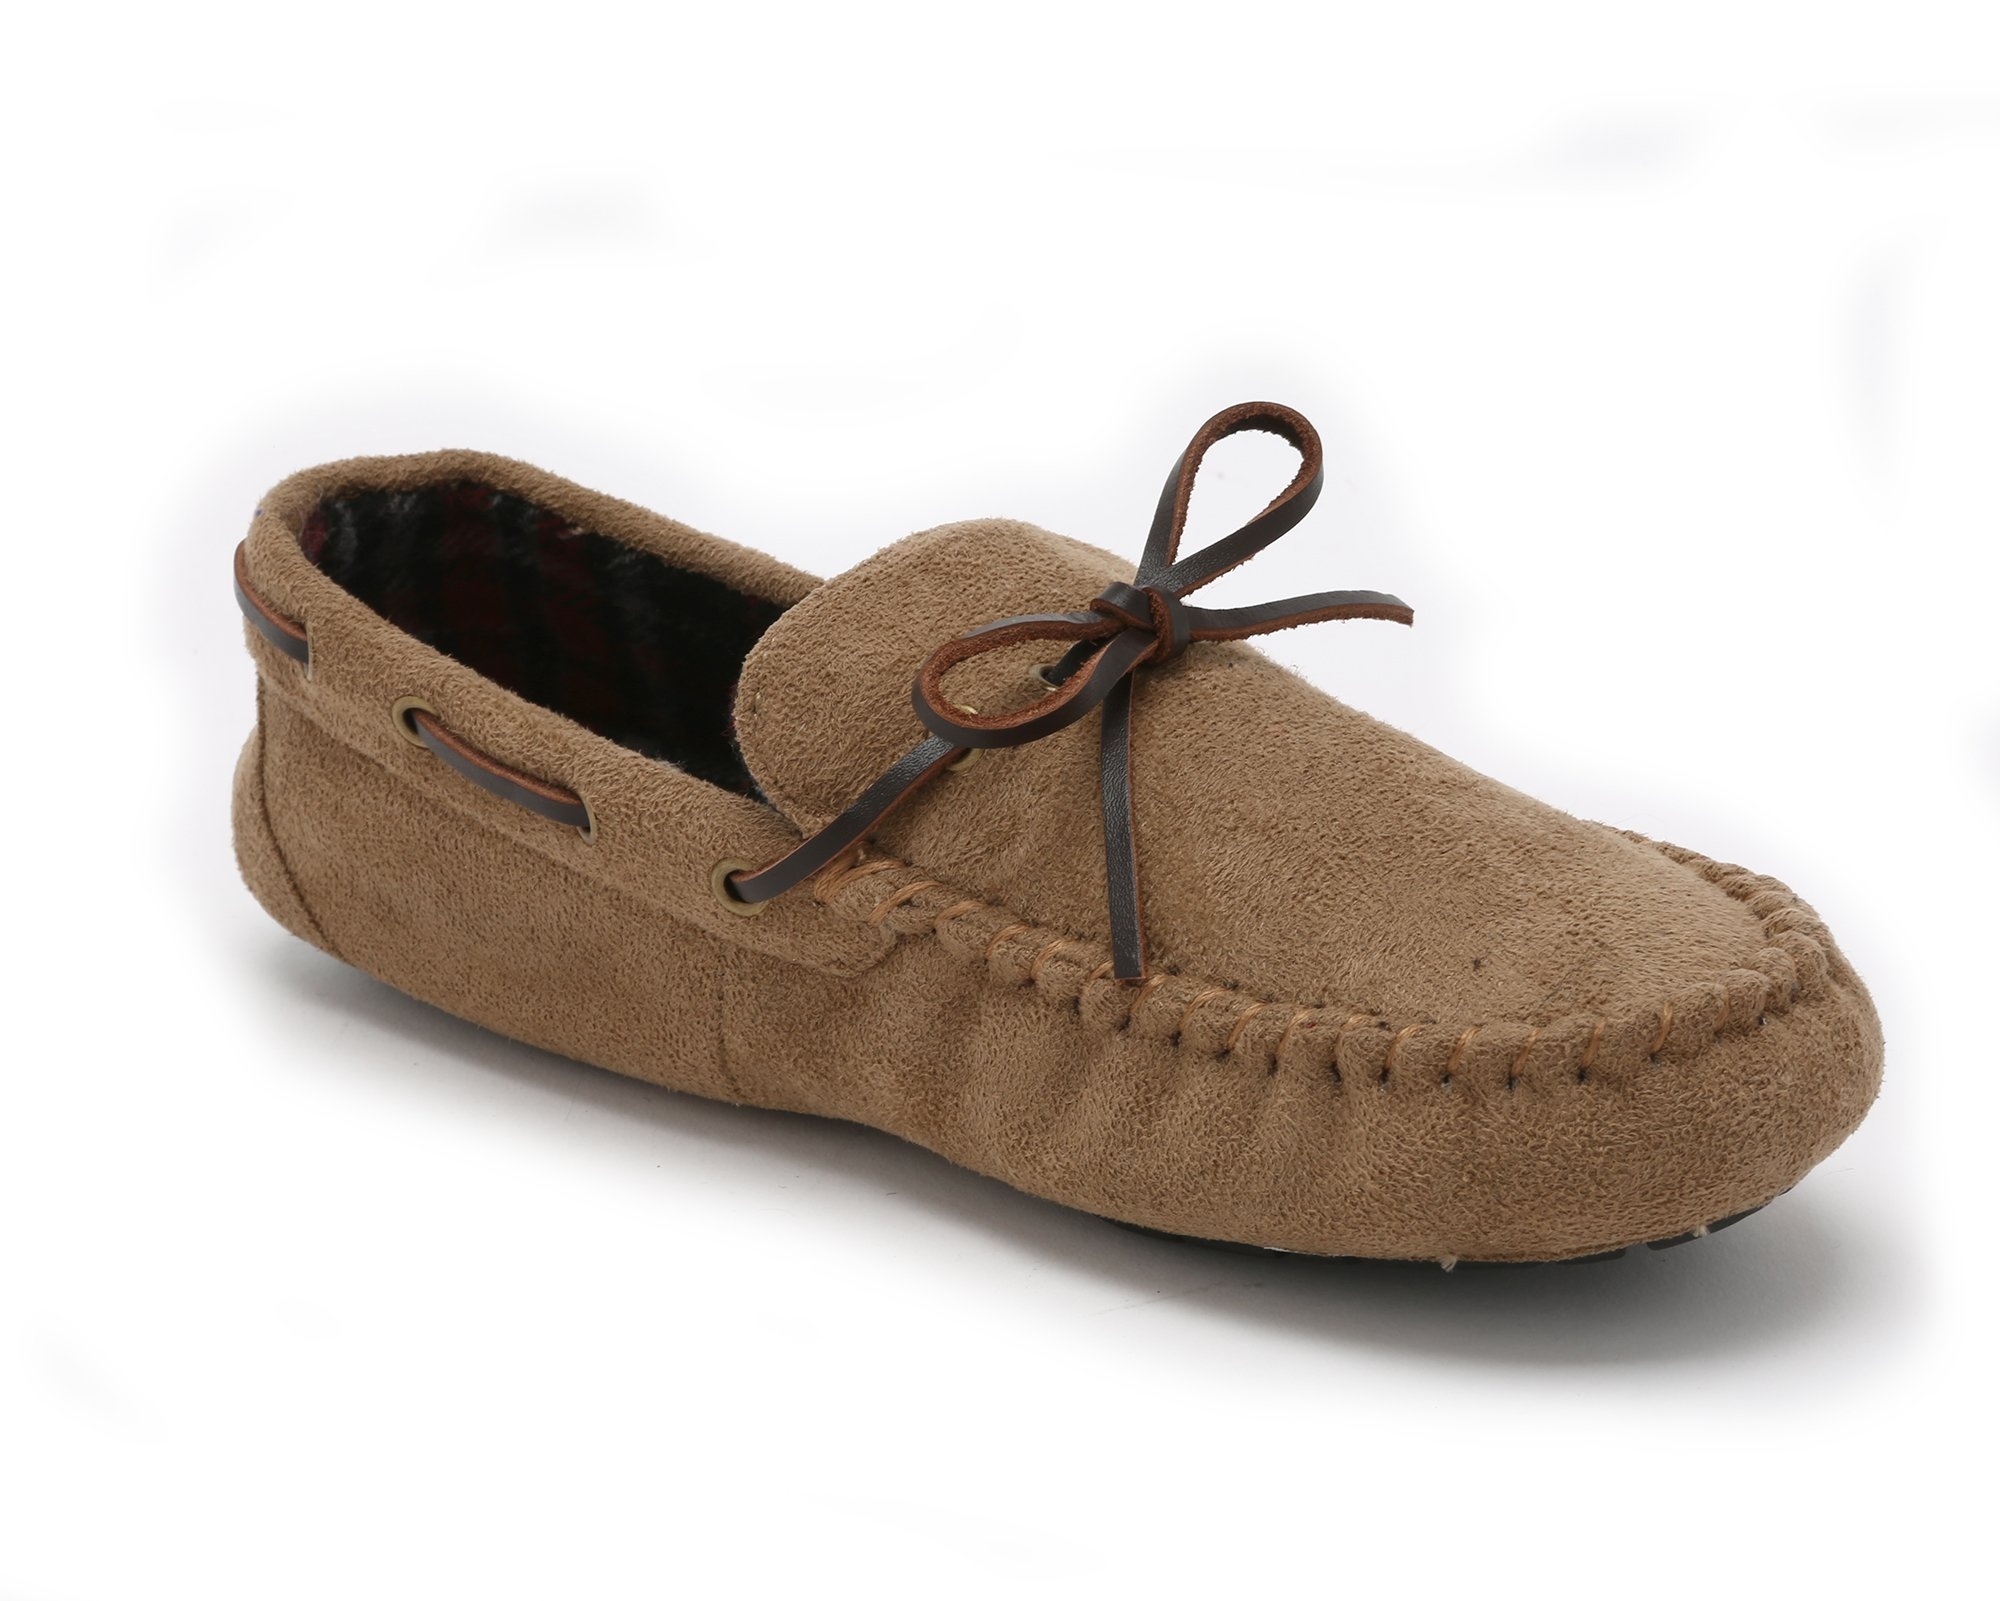 Pembrook Men's Moccasin Slippers – Size M - Micro suede Indoor and Outdoor Non-Skid Sole - Great Plush Slip On House or Driving Shoes for adults, Men, Boys